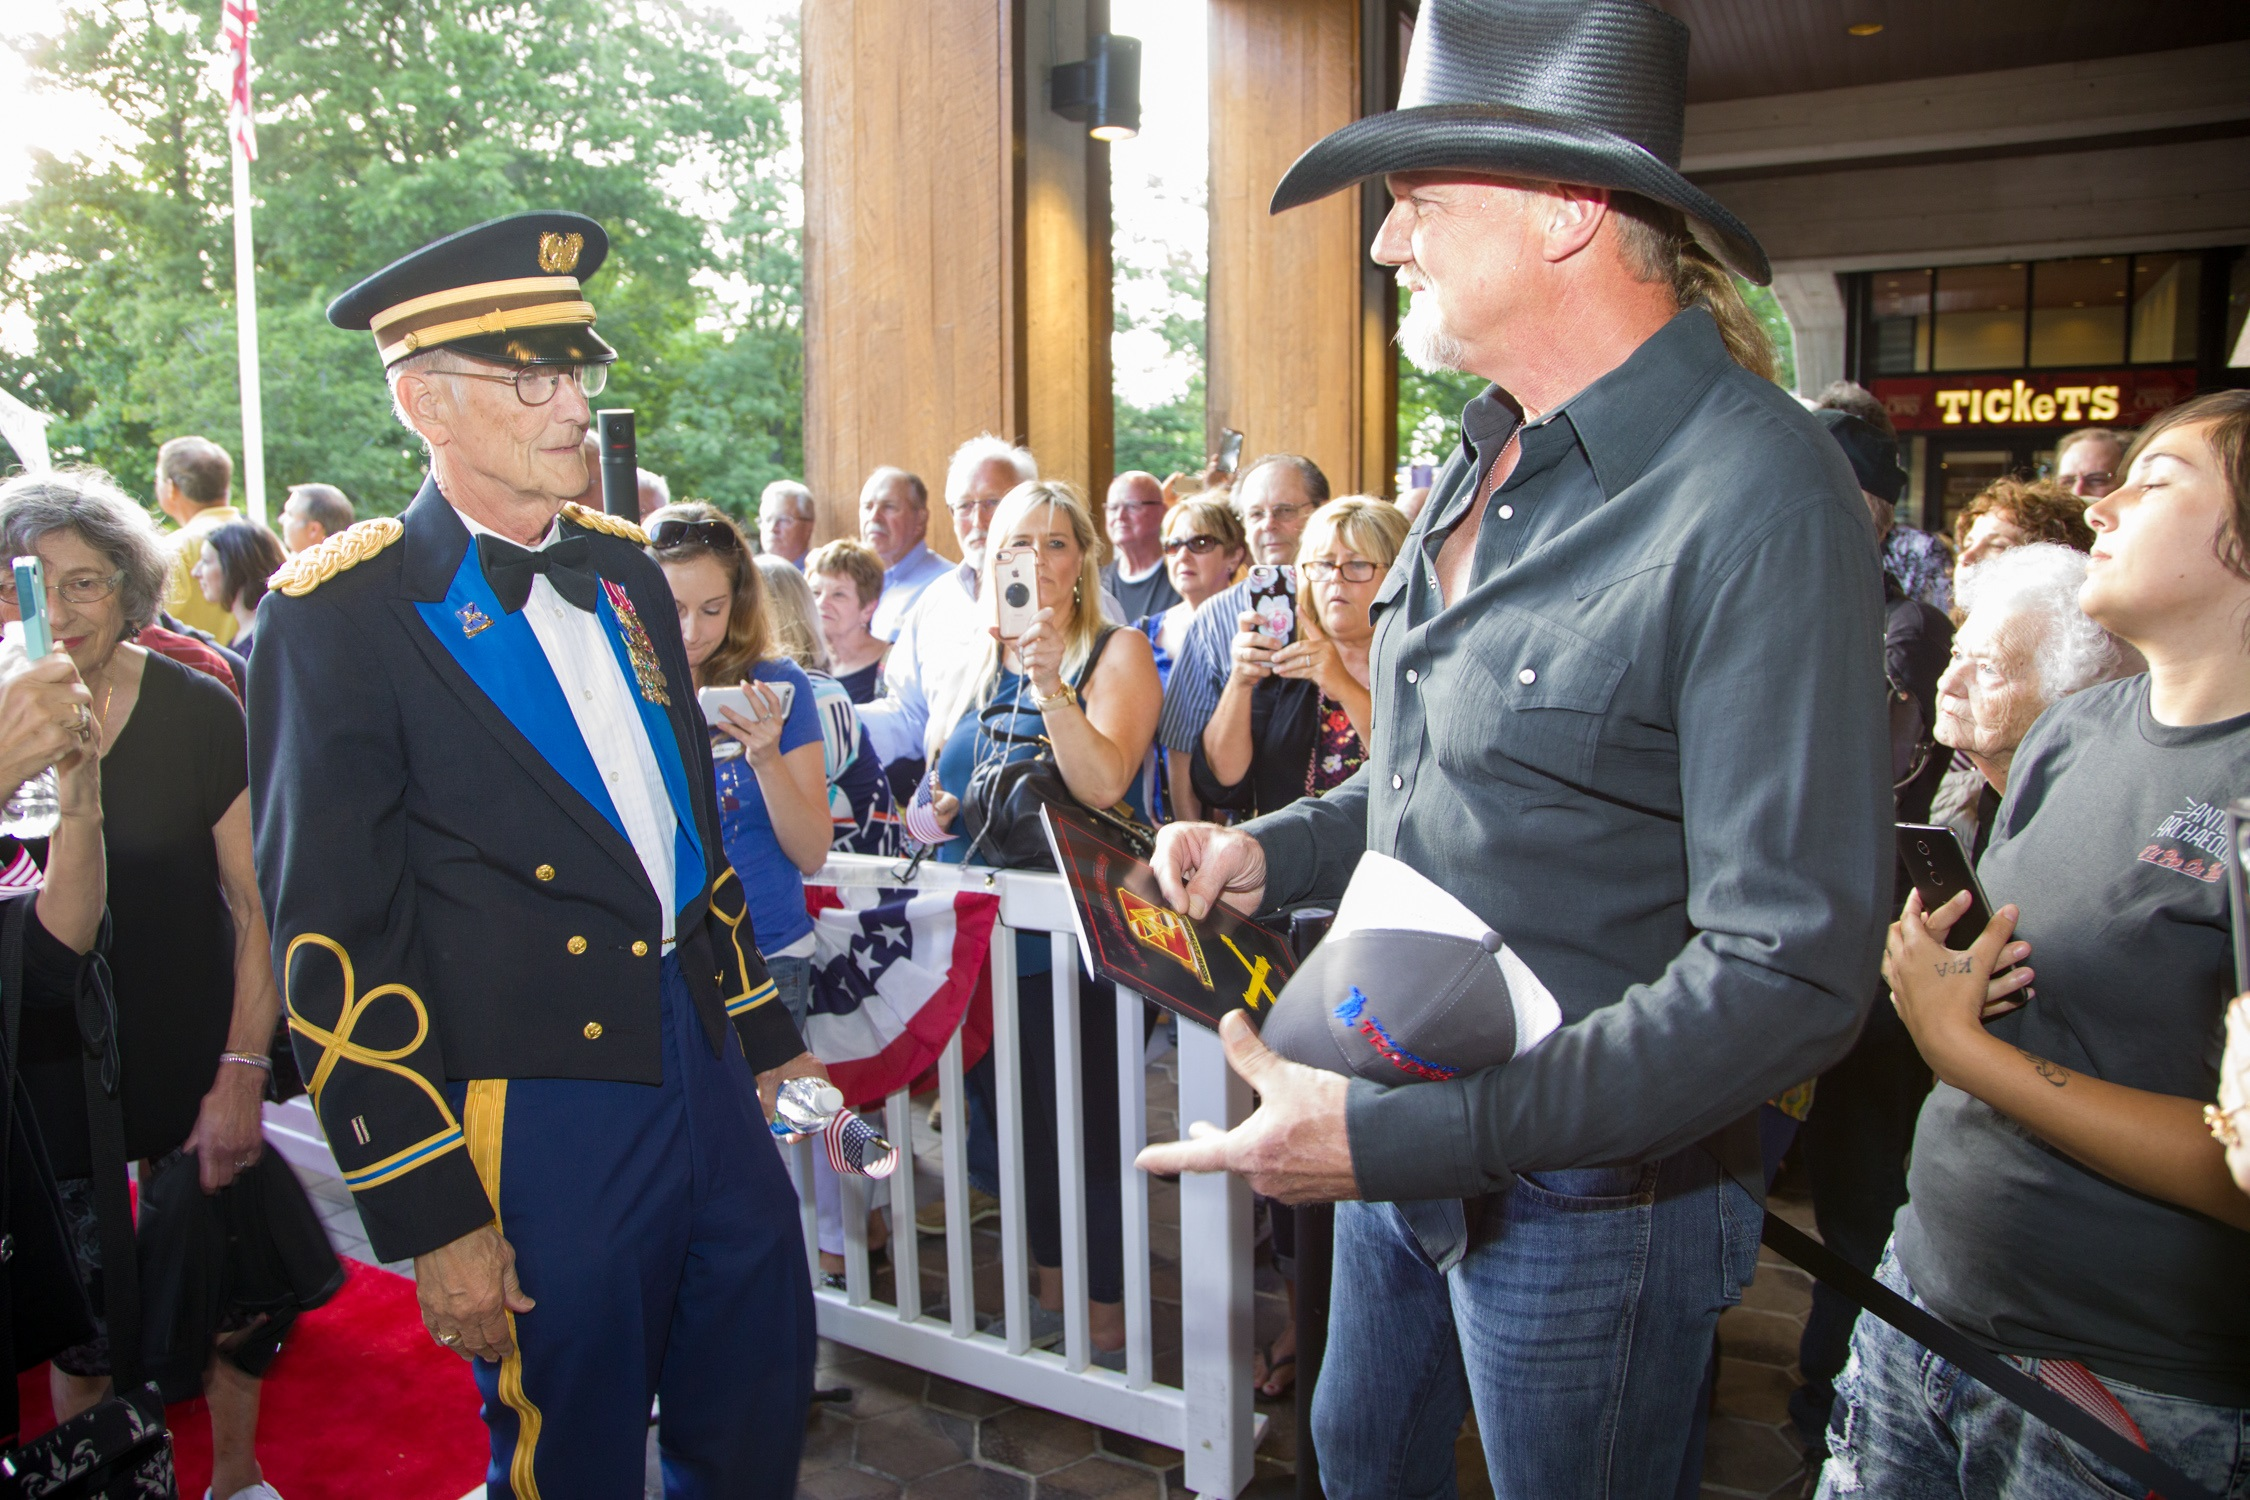 Grand Ole Opry's 'Salute the Troops' Show Has Personal Meaning for Country Stars